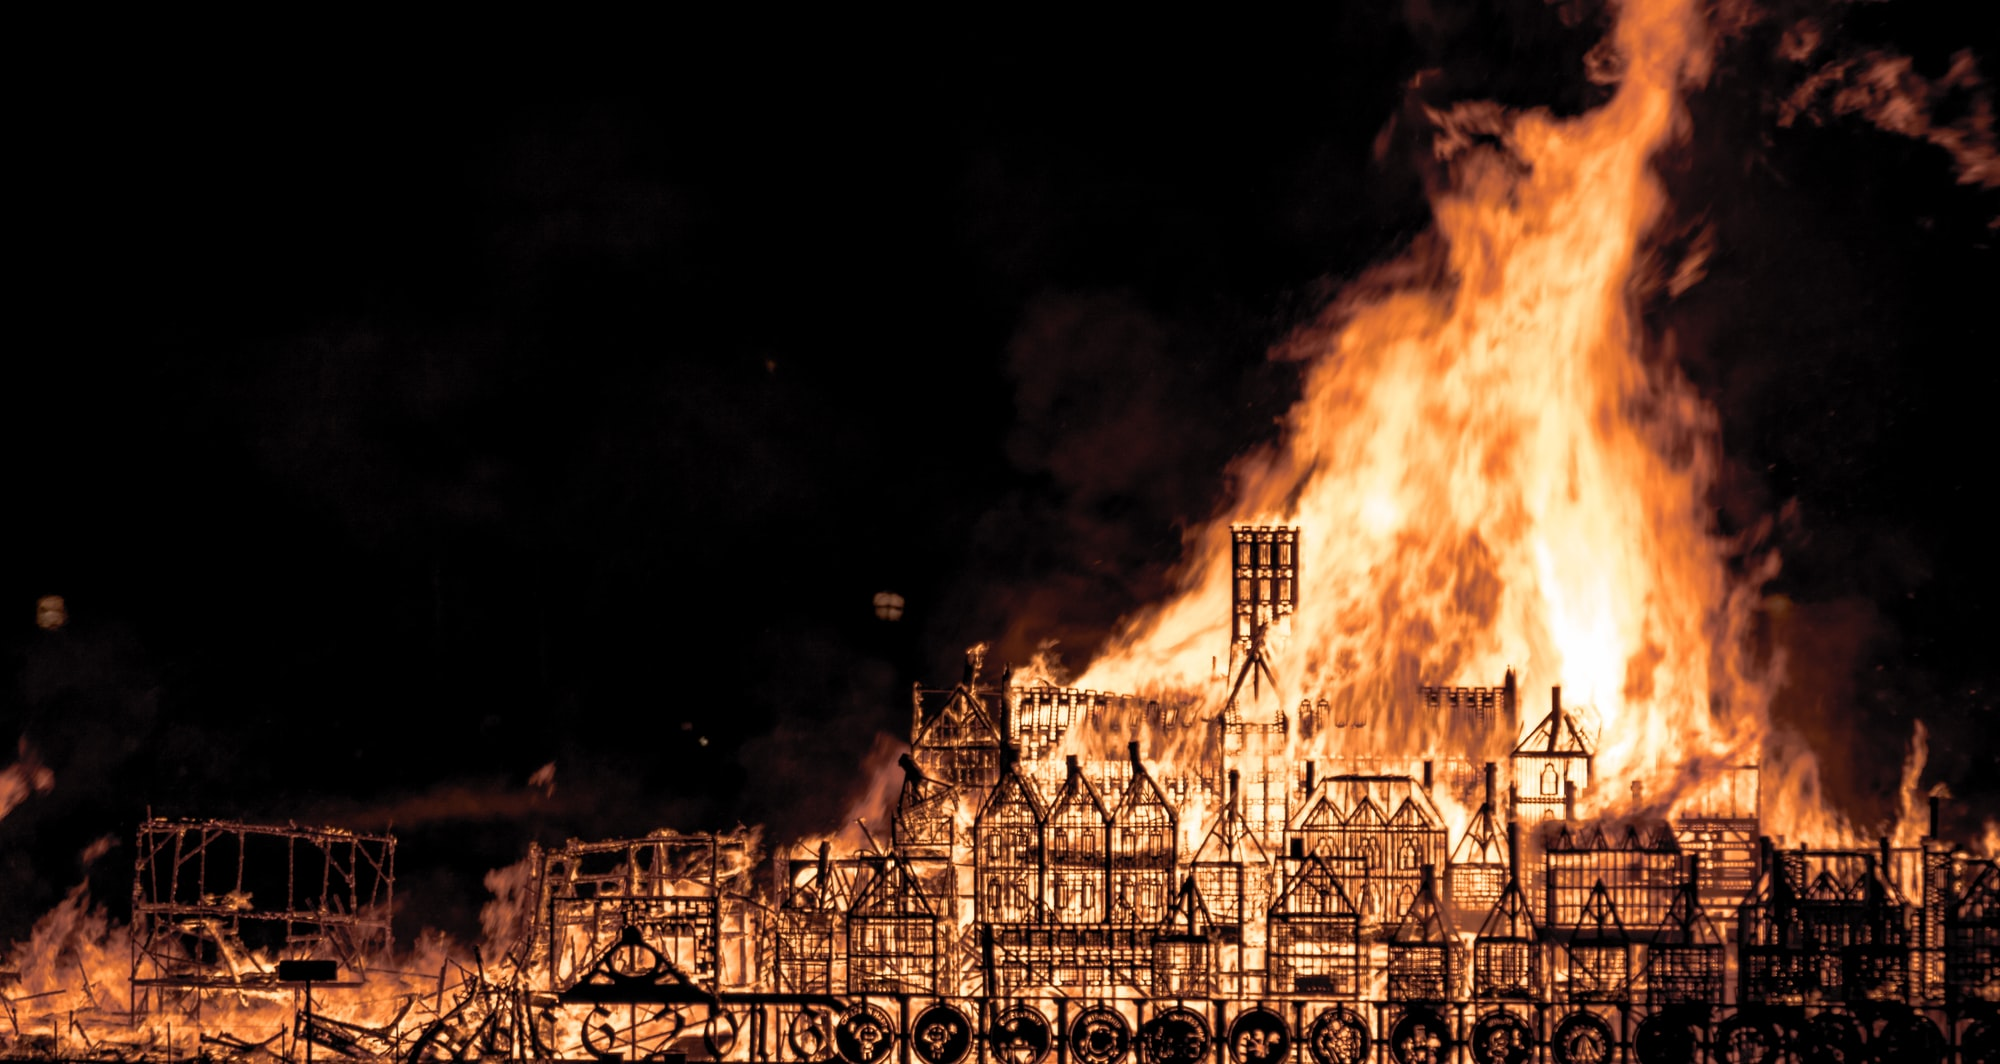 Reenactment of the 1666 Great fire of London